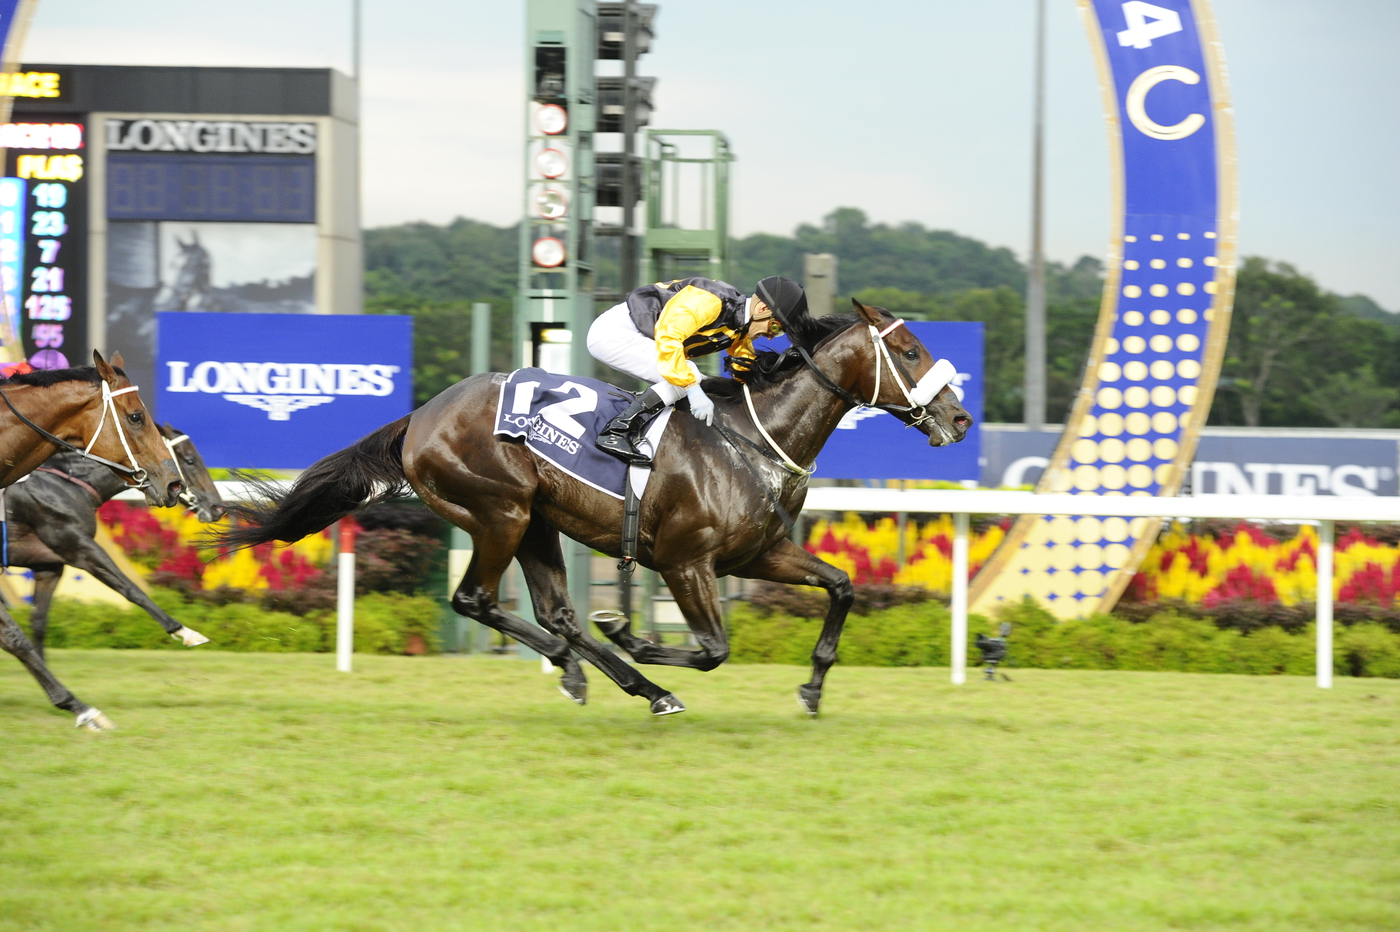 Longines Flat Racing Event: LONGINES SINGAPORE GOLD CUP 2014 RAISES S$241,616 FOR CHARITY (Singapore, SINGAPORE)  13